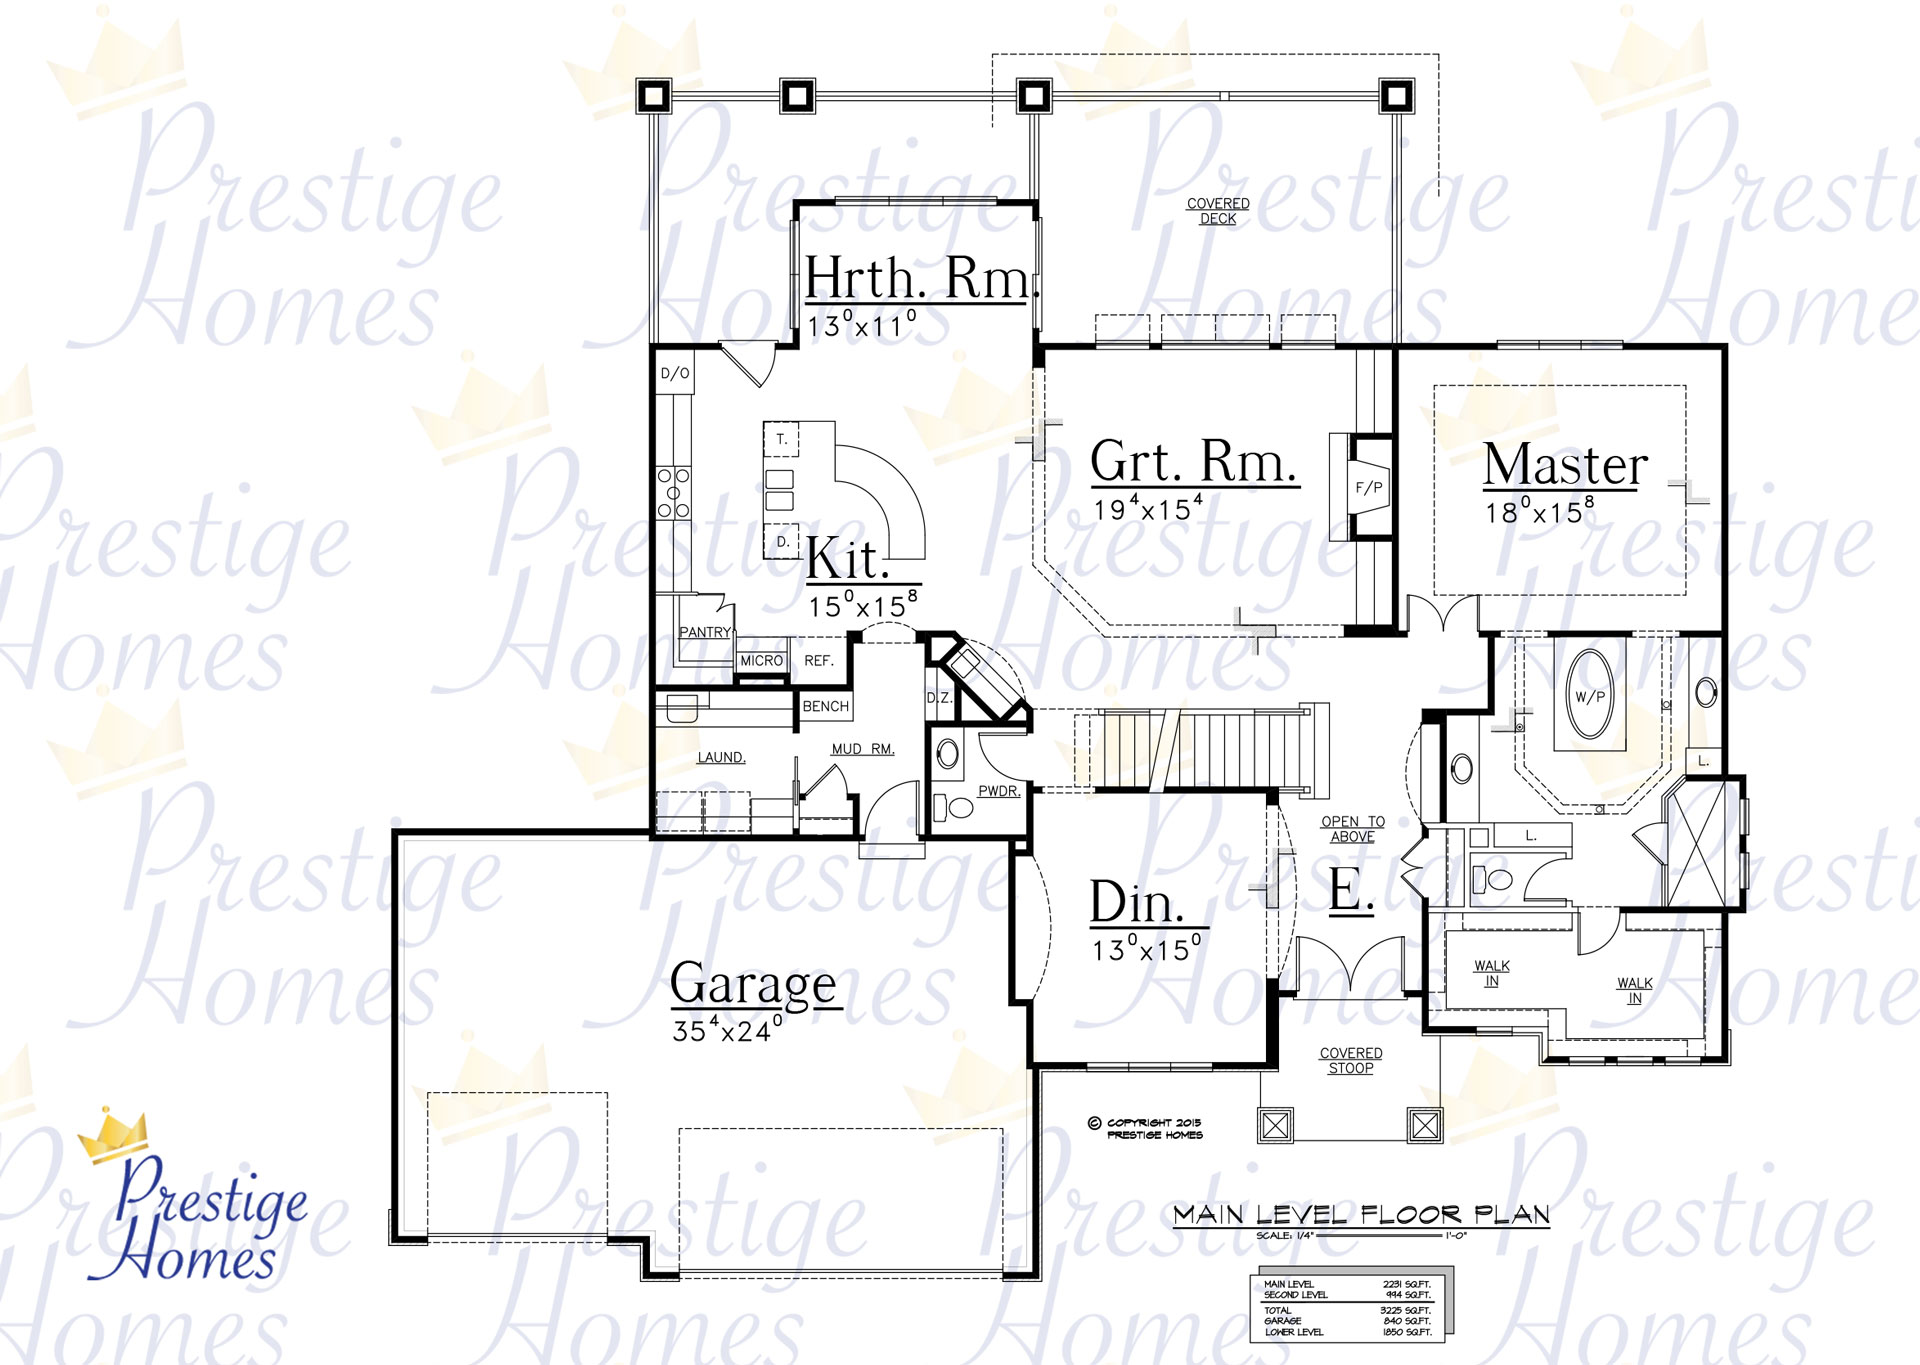 Prestige Homes - Floor Plan - Bella Reduced Footage - Main